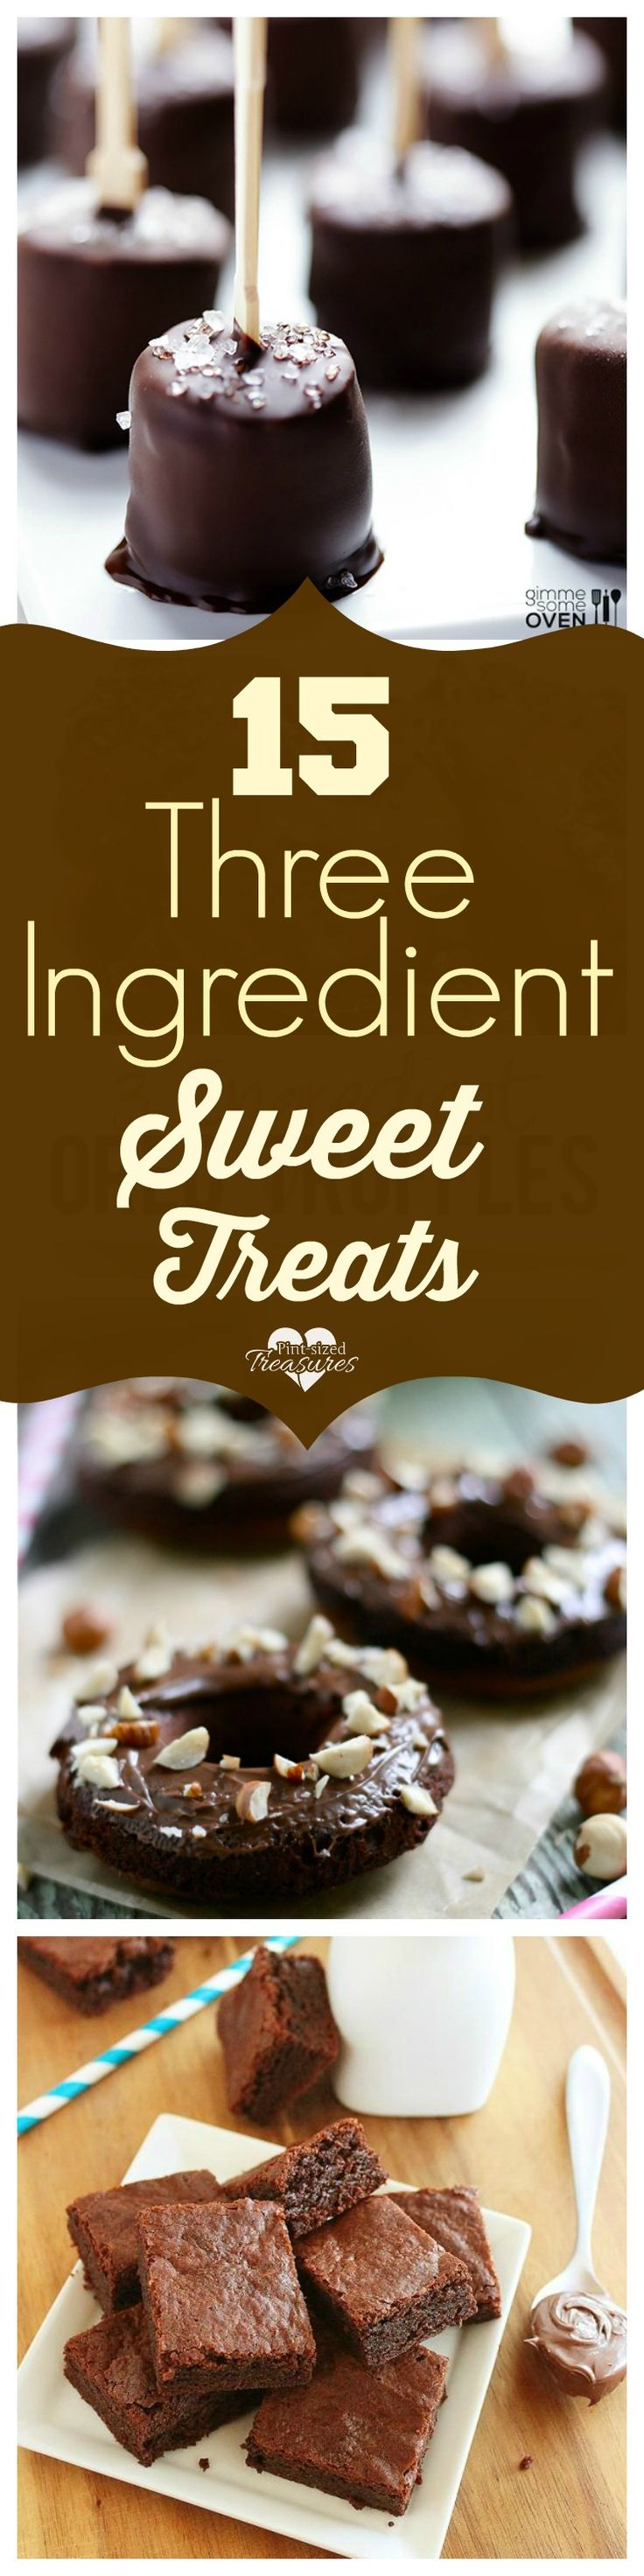 Love easy, sweet treats? These three ingredient treats will make you smile!